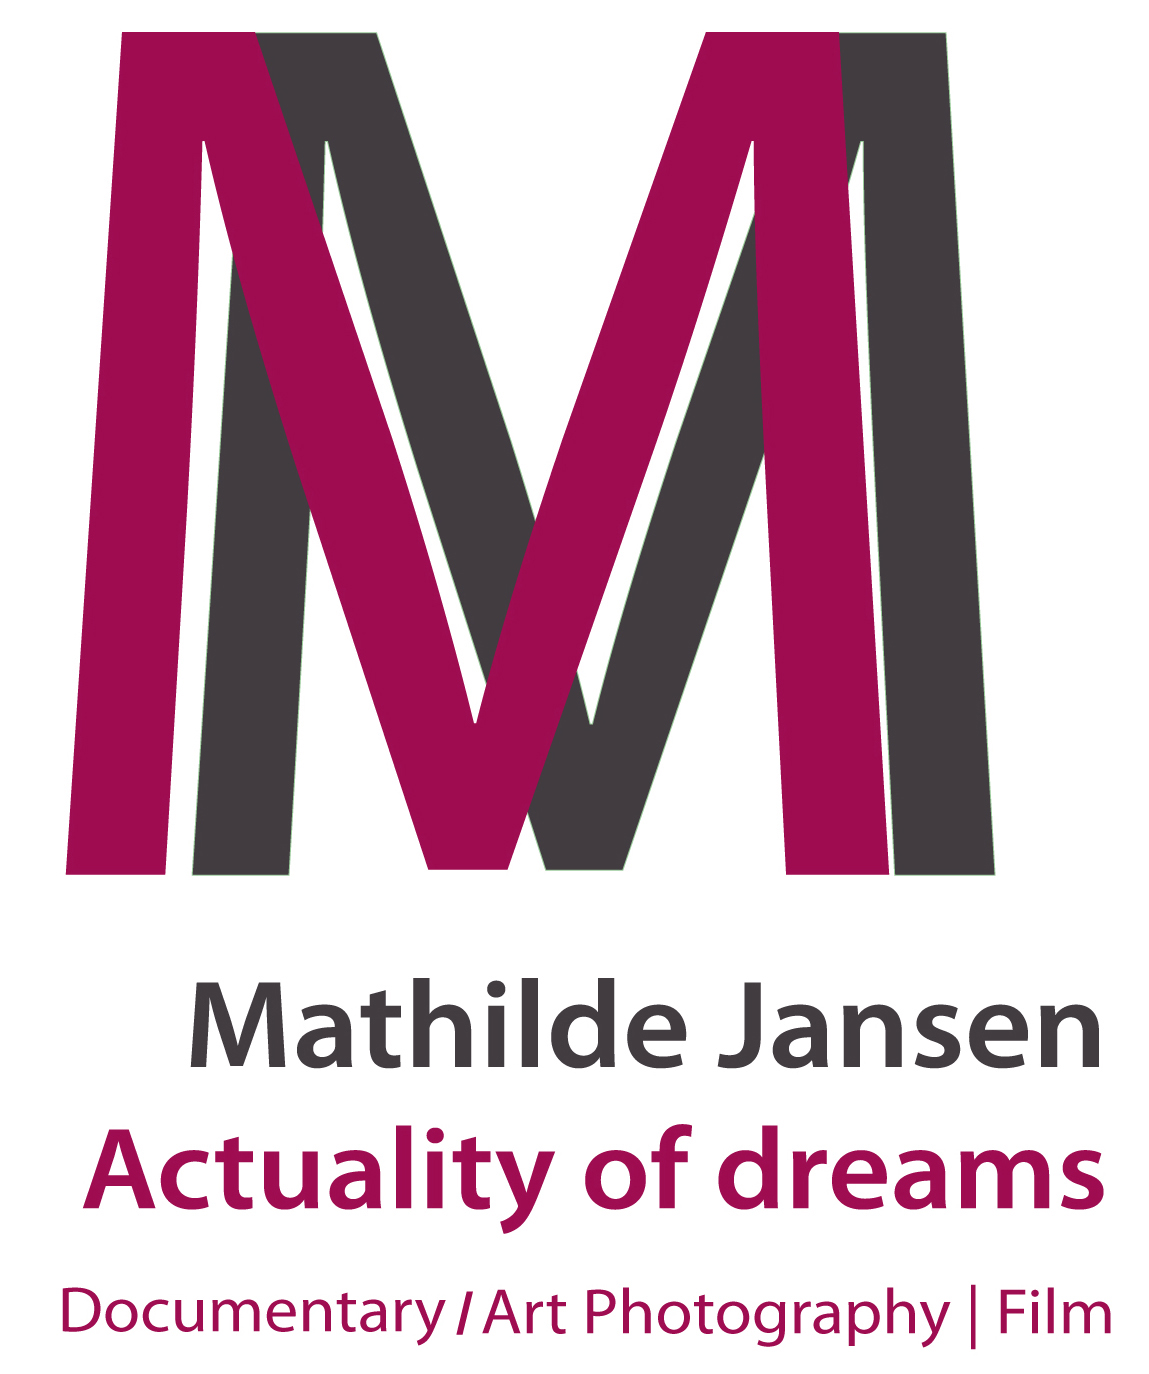 Mathilde_Jansen__Actuality_Of_dreams